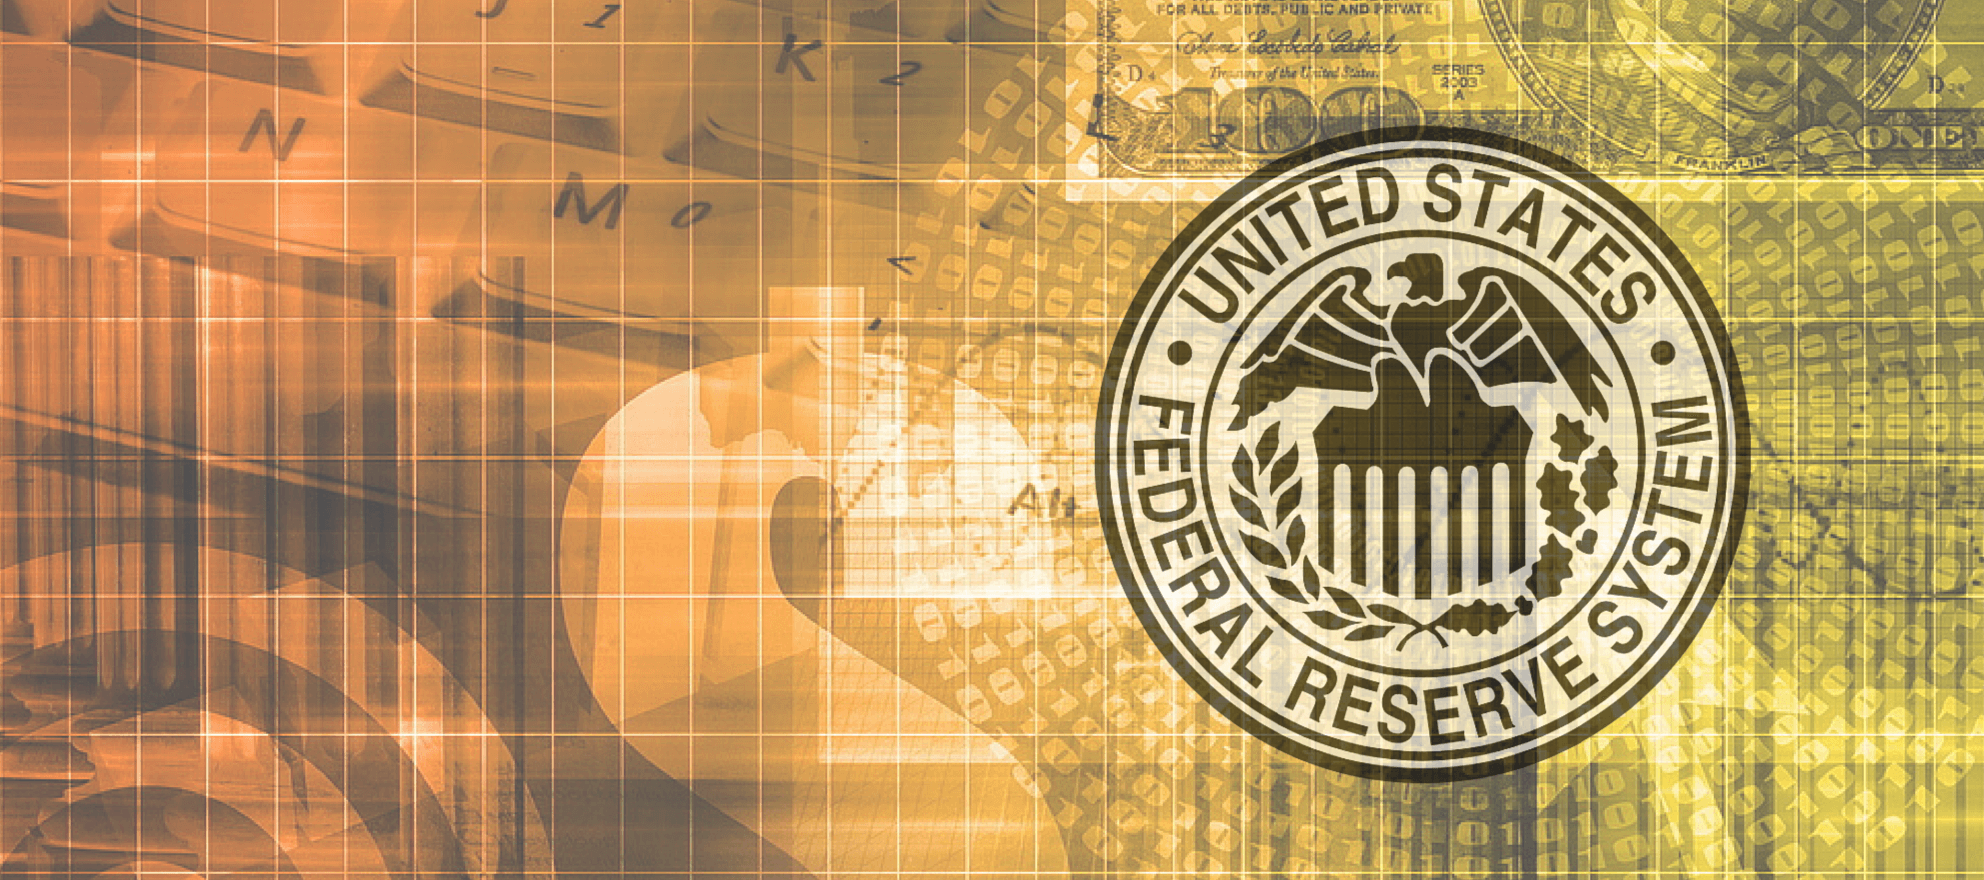 The Fed has misinterpreted the effect of falling oil prices and a strong dollar